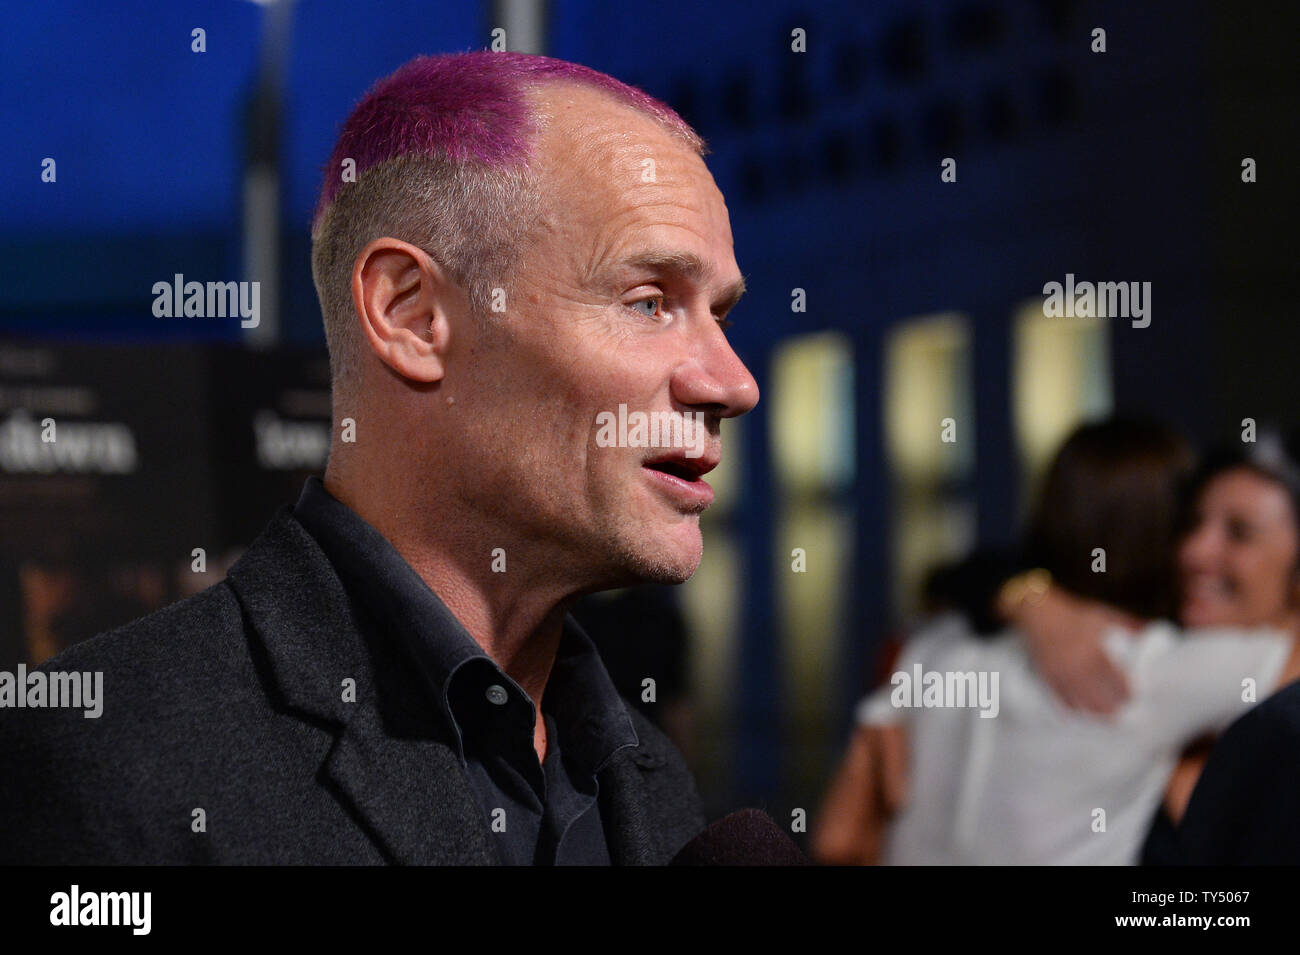 """Cast member Flea attends the premiere of the biographical motion picture drama """"Low Down"""" at the Arclight Cinerama Dome in the Hollywood section of Los Angeles on October 23, 2014. Storyline:  A look at the life of pianist Joe Albany from the perspective of his young daughter, as she watches him contend with his drug addiction during the 1960s and '70s jazz scene.  UPI/Jim Ruymen Stock Photo"""